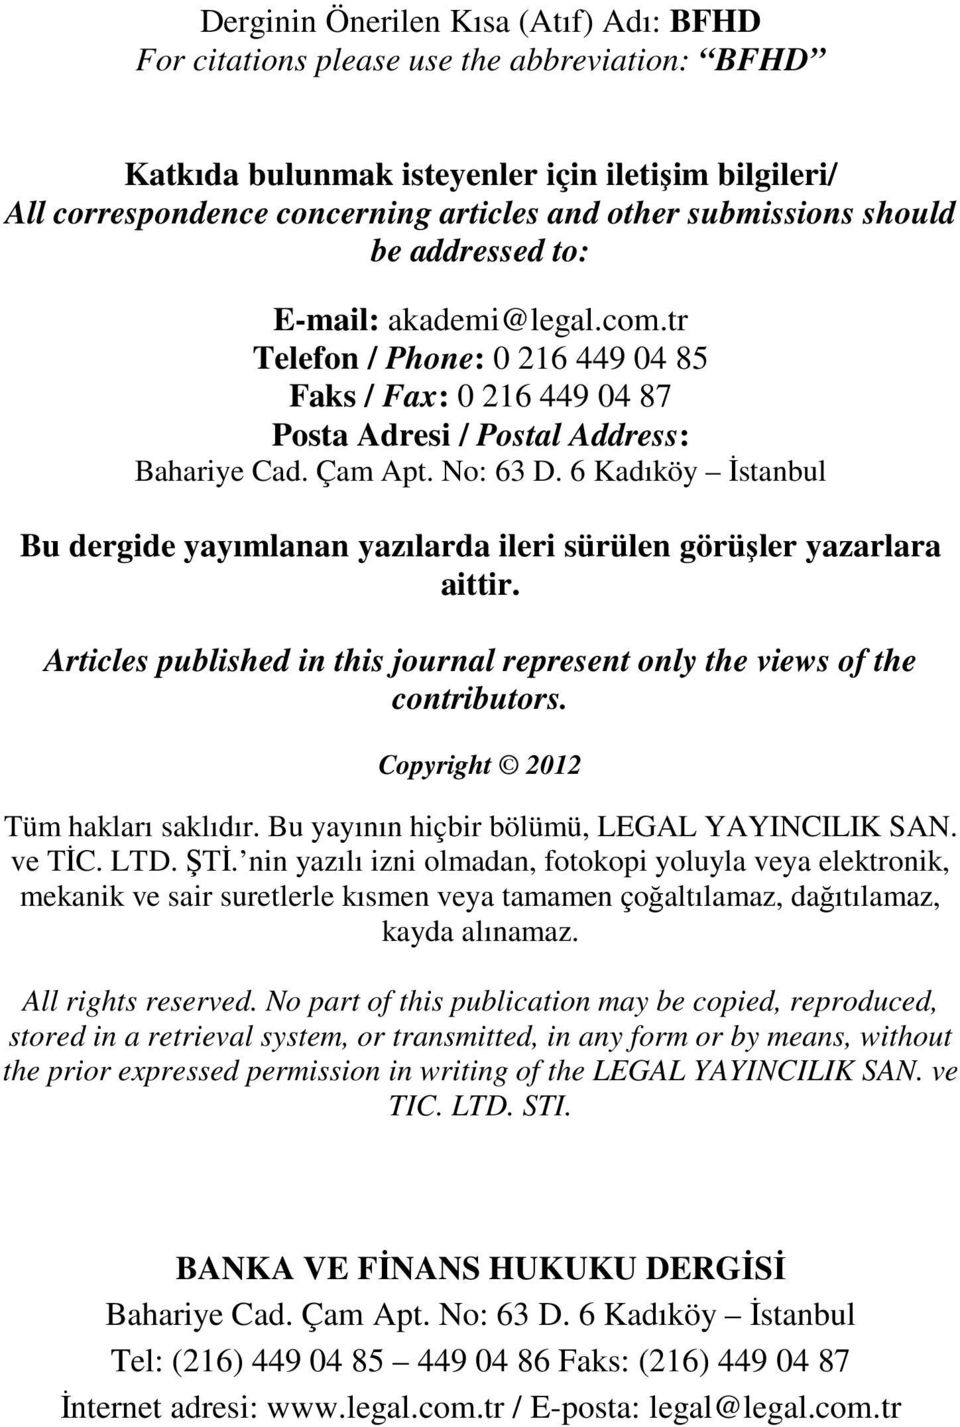 6 Kadıköy İstanbul Bu dergide yayımlanan yazılarda ileri sürülen görüşler yazarlara aittir. Articles published in this journal represent only the views of the contributors.